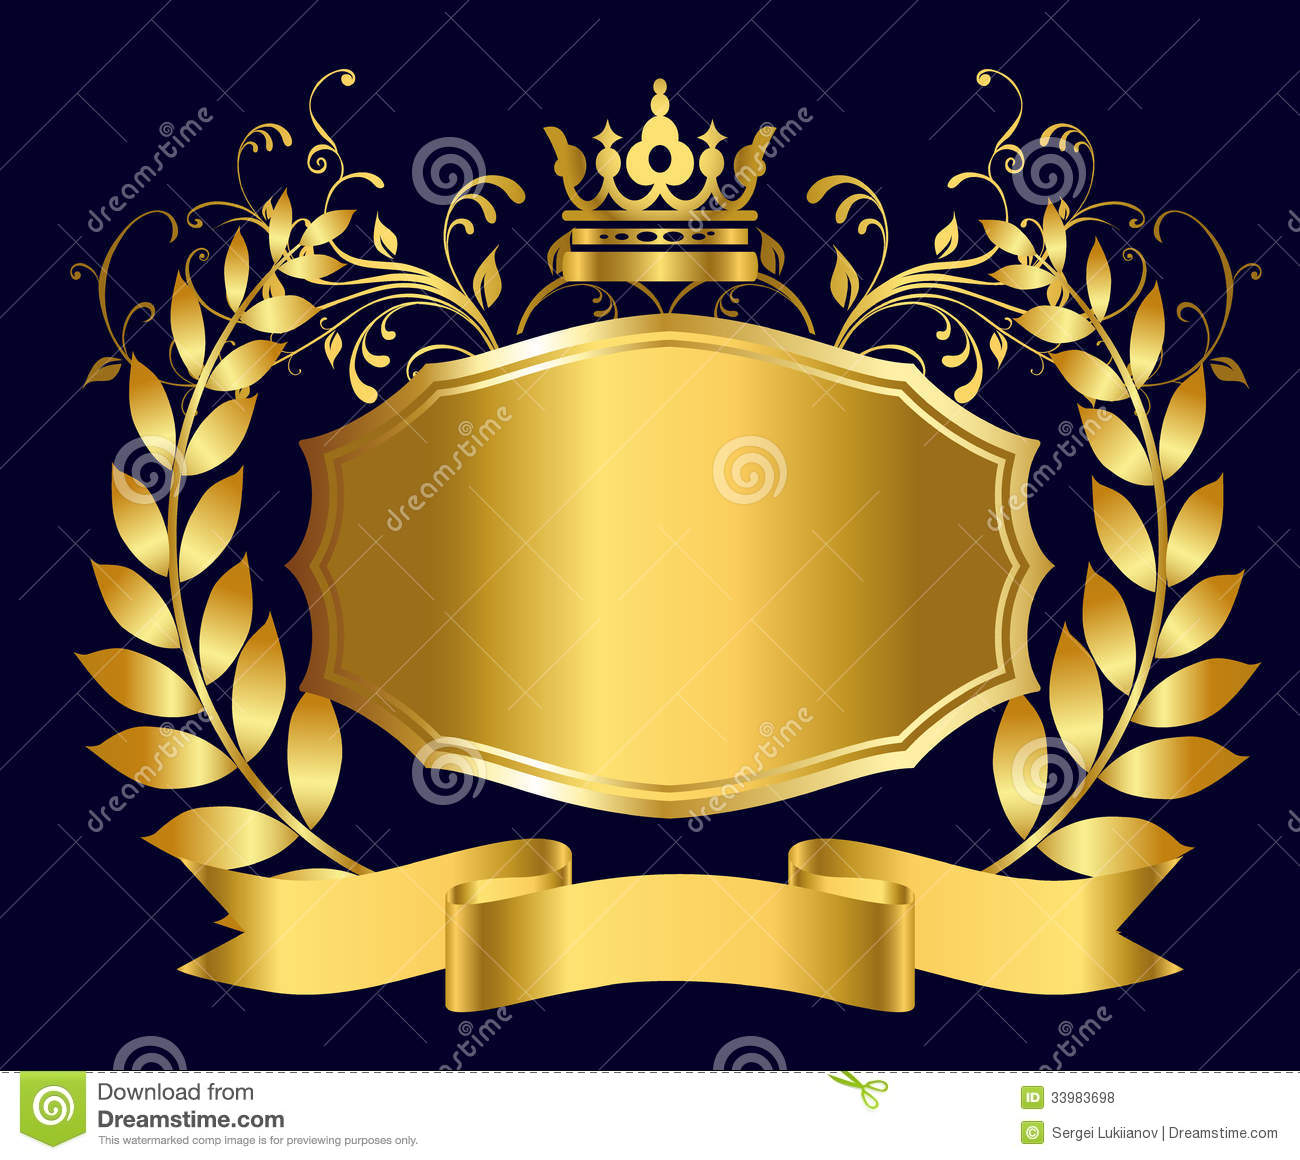 Royal Shield Of Gold Stock Vector Illustration Of Label 33983698